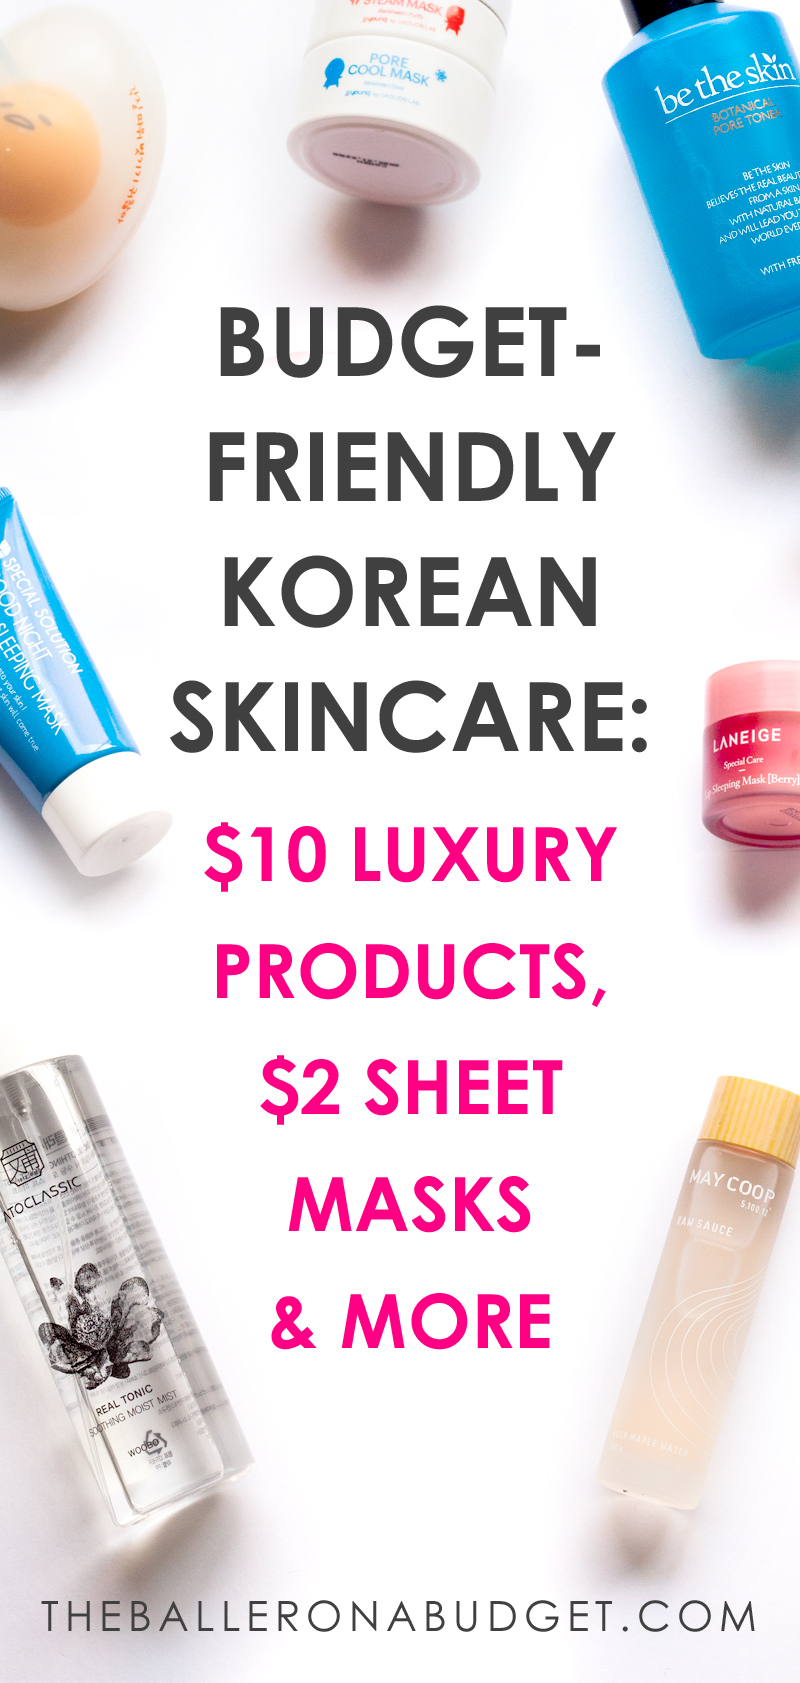 Looking for some budget-friendly Korean skincare products to try out? From $10 samples of luxury products to $2 sheet masks, Peach and Lily's got your back. Check out my beauty haul and review! - www.theballeronabudget.com